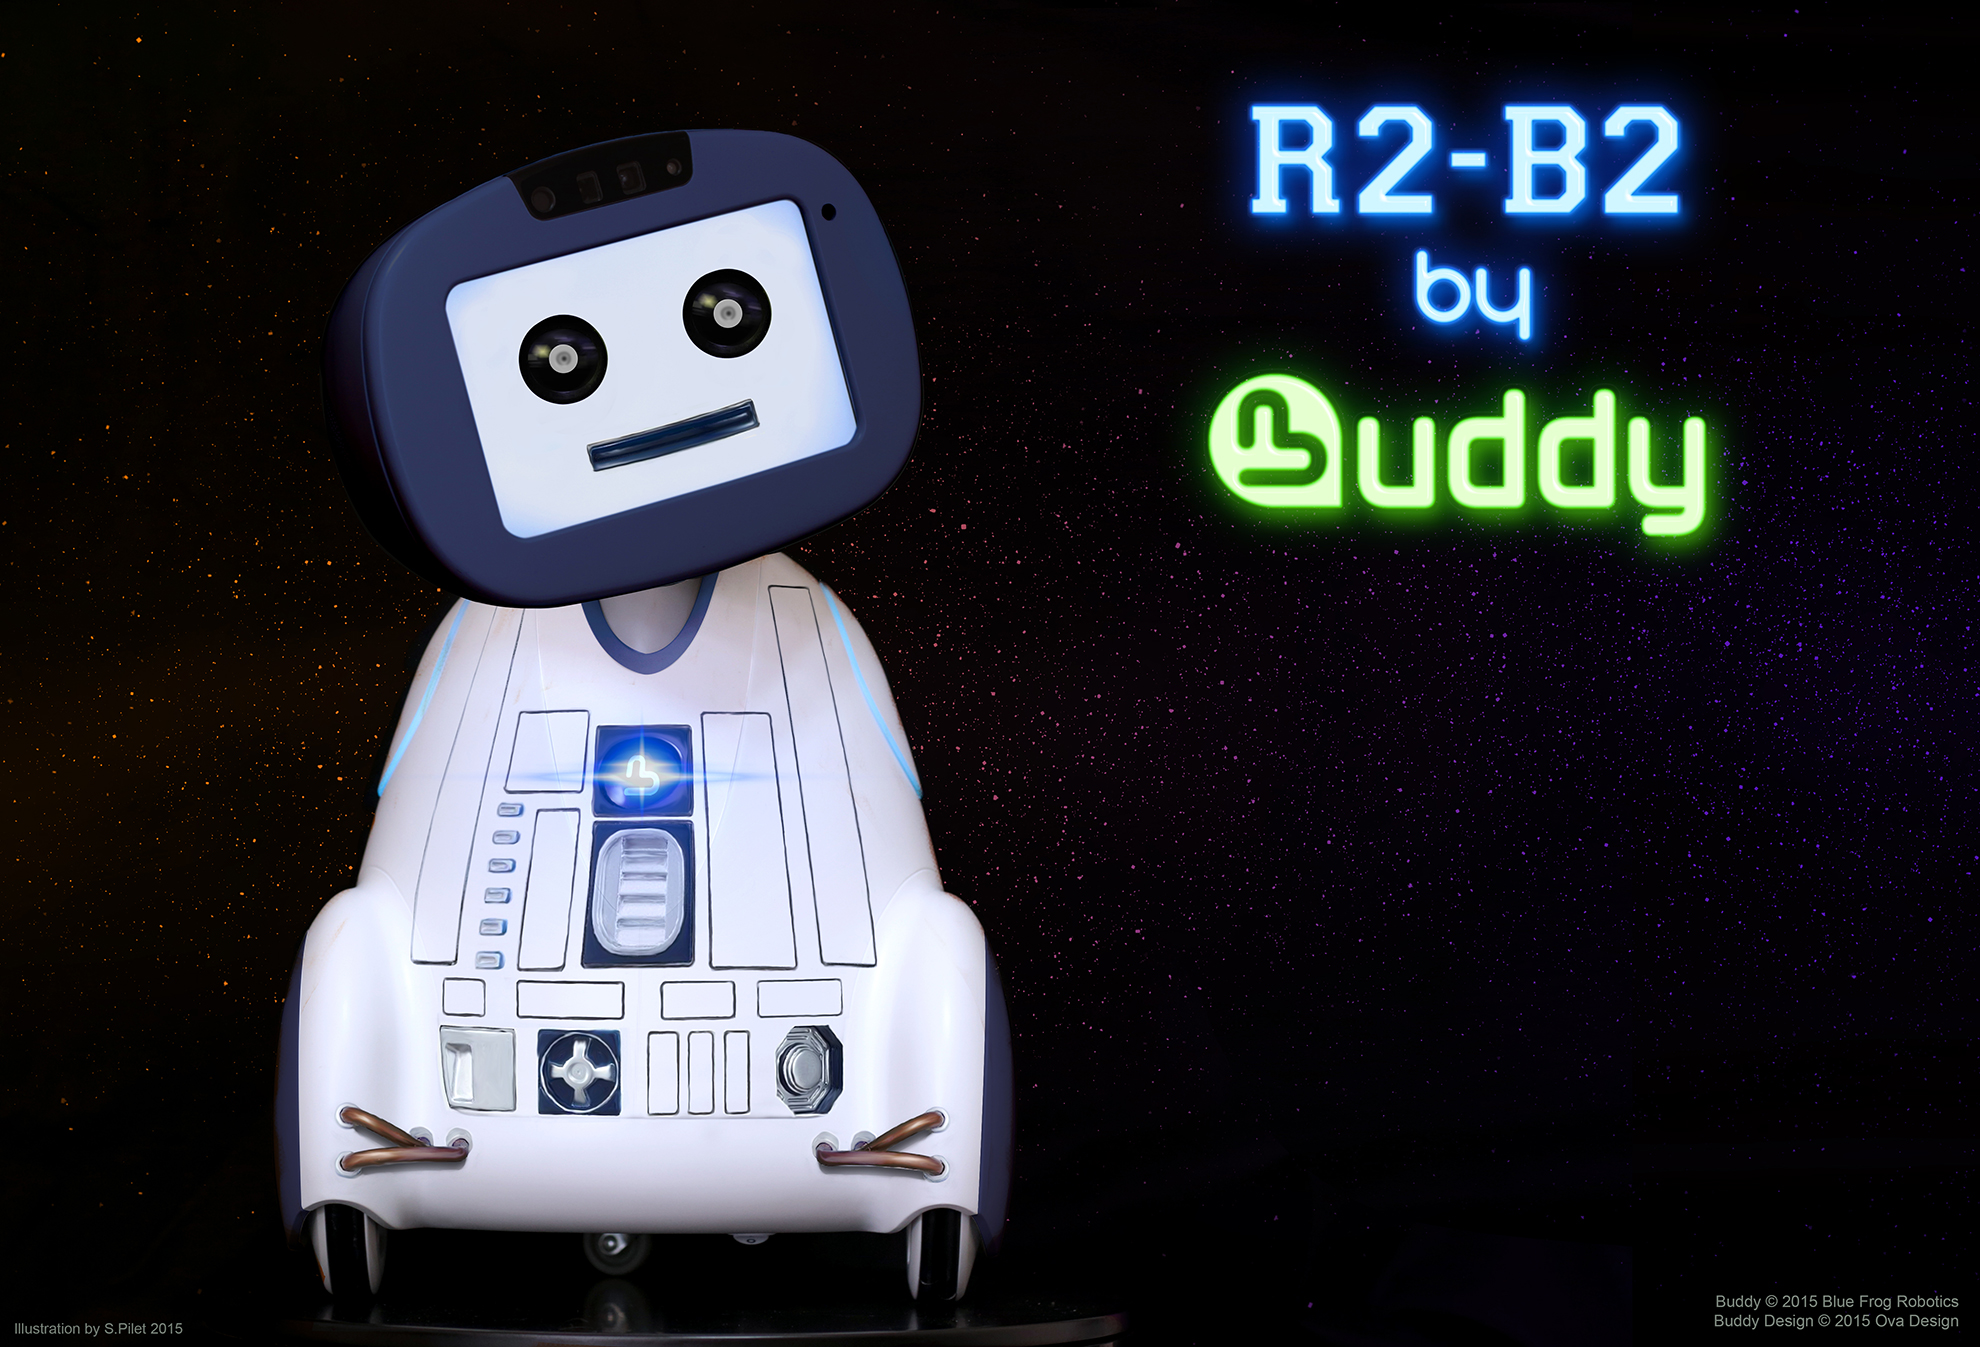 BUDDY R2-B2 Blue Frog Robotics